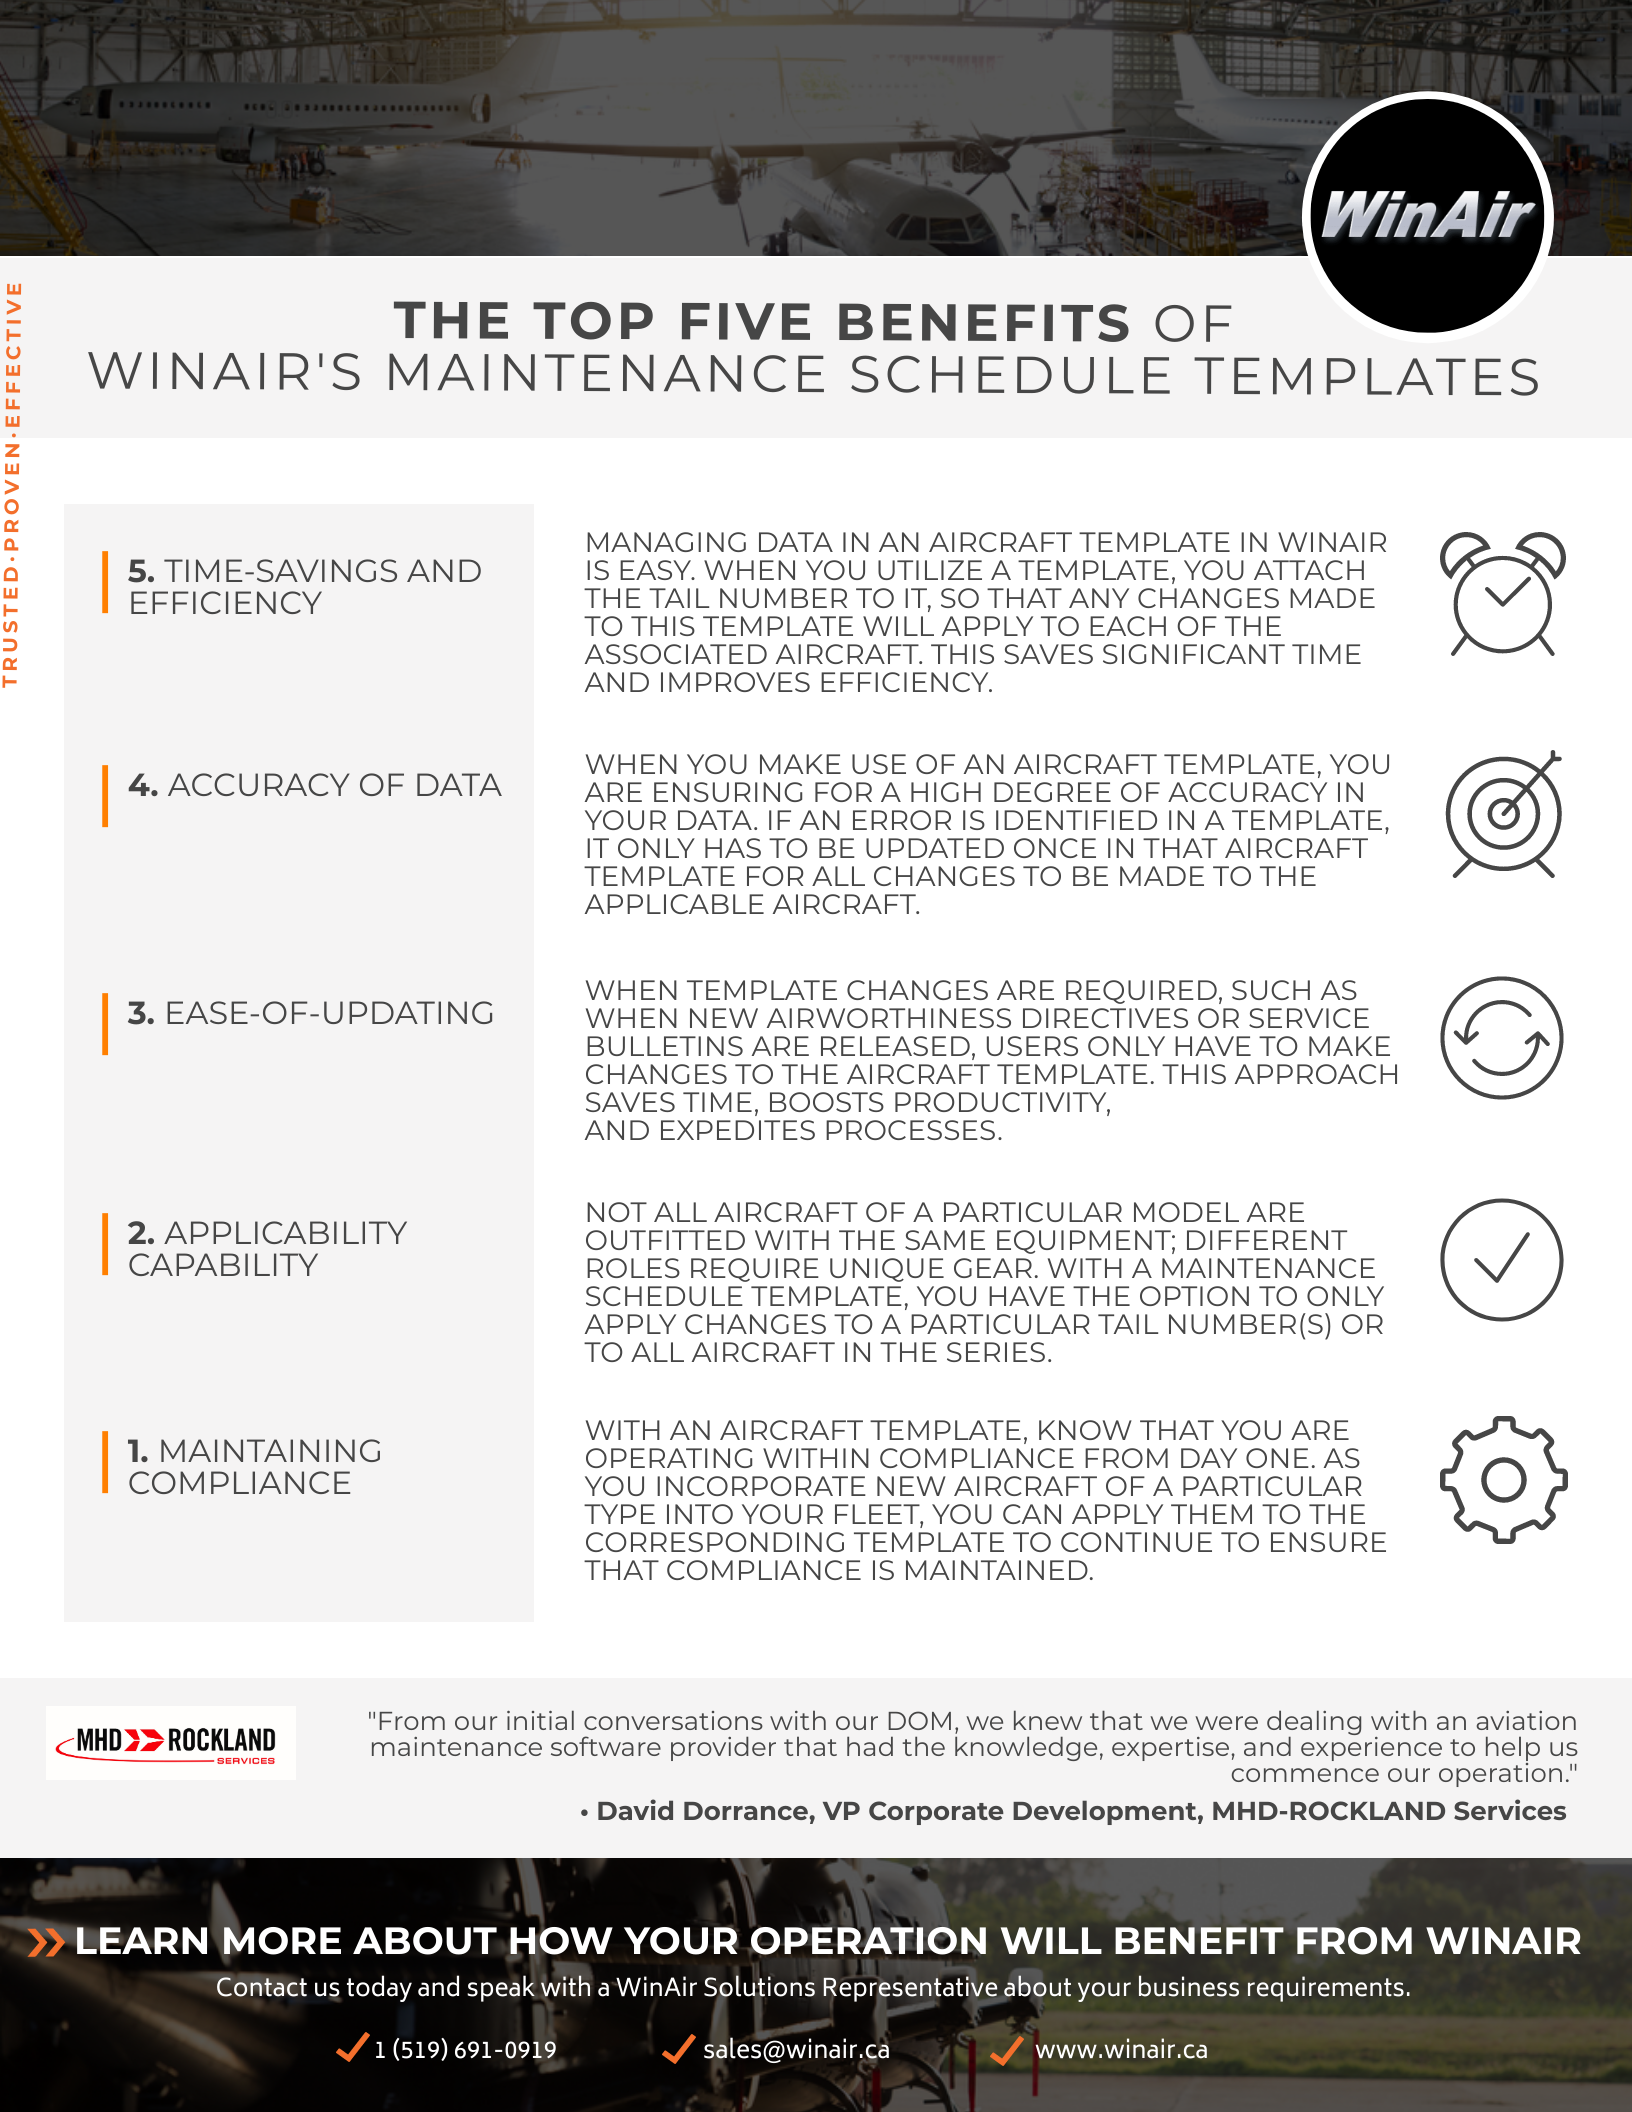 The Top Five Benefits of WinAir's Maintenance Schedule Templates